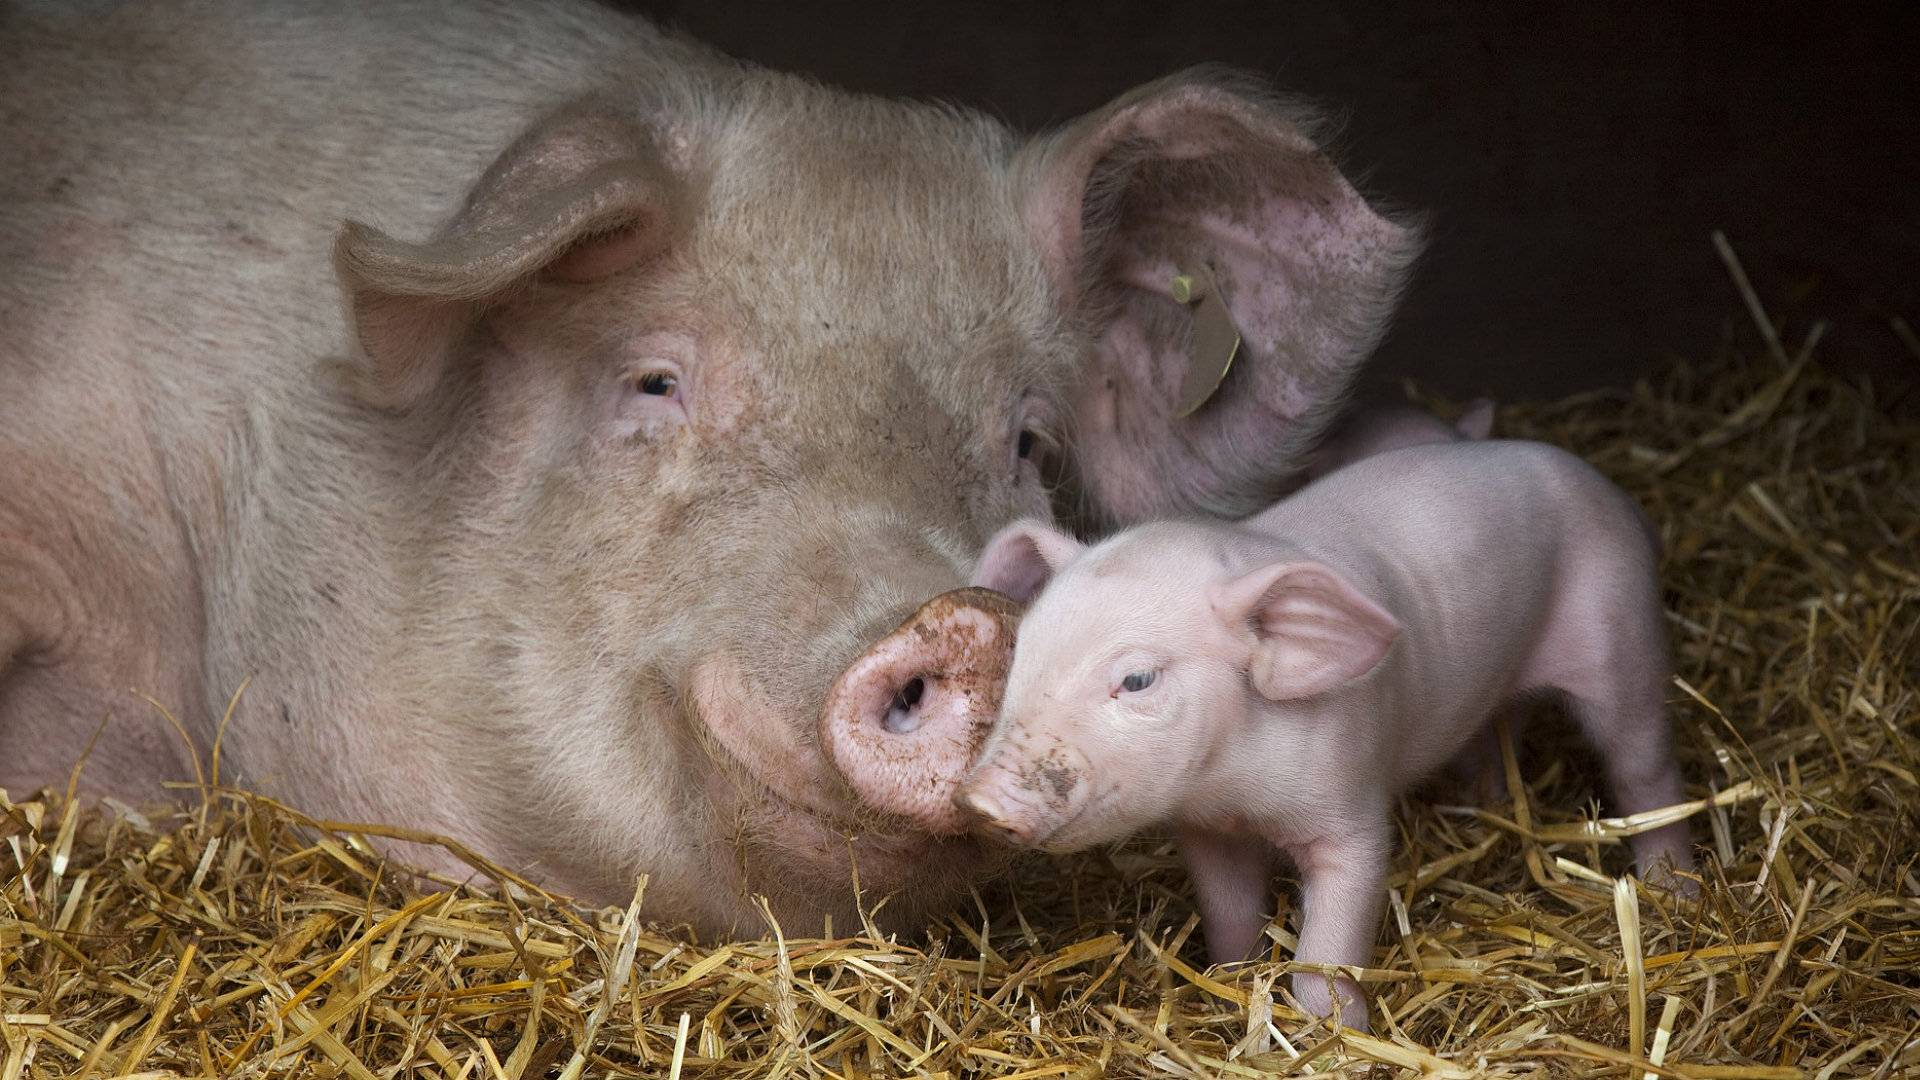 http://wallpaperhdwide.com/wp-content/gallery/pictures-of-baby-pigs/278460-animal-lovers-mother-and-baby-pig.jpg